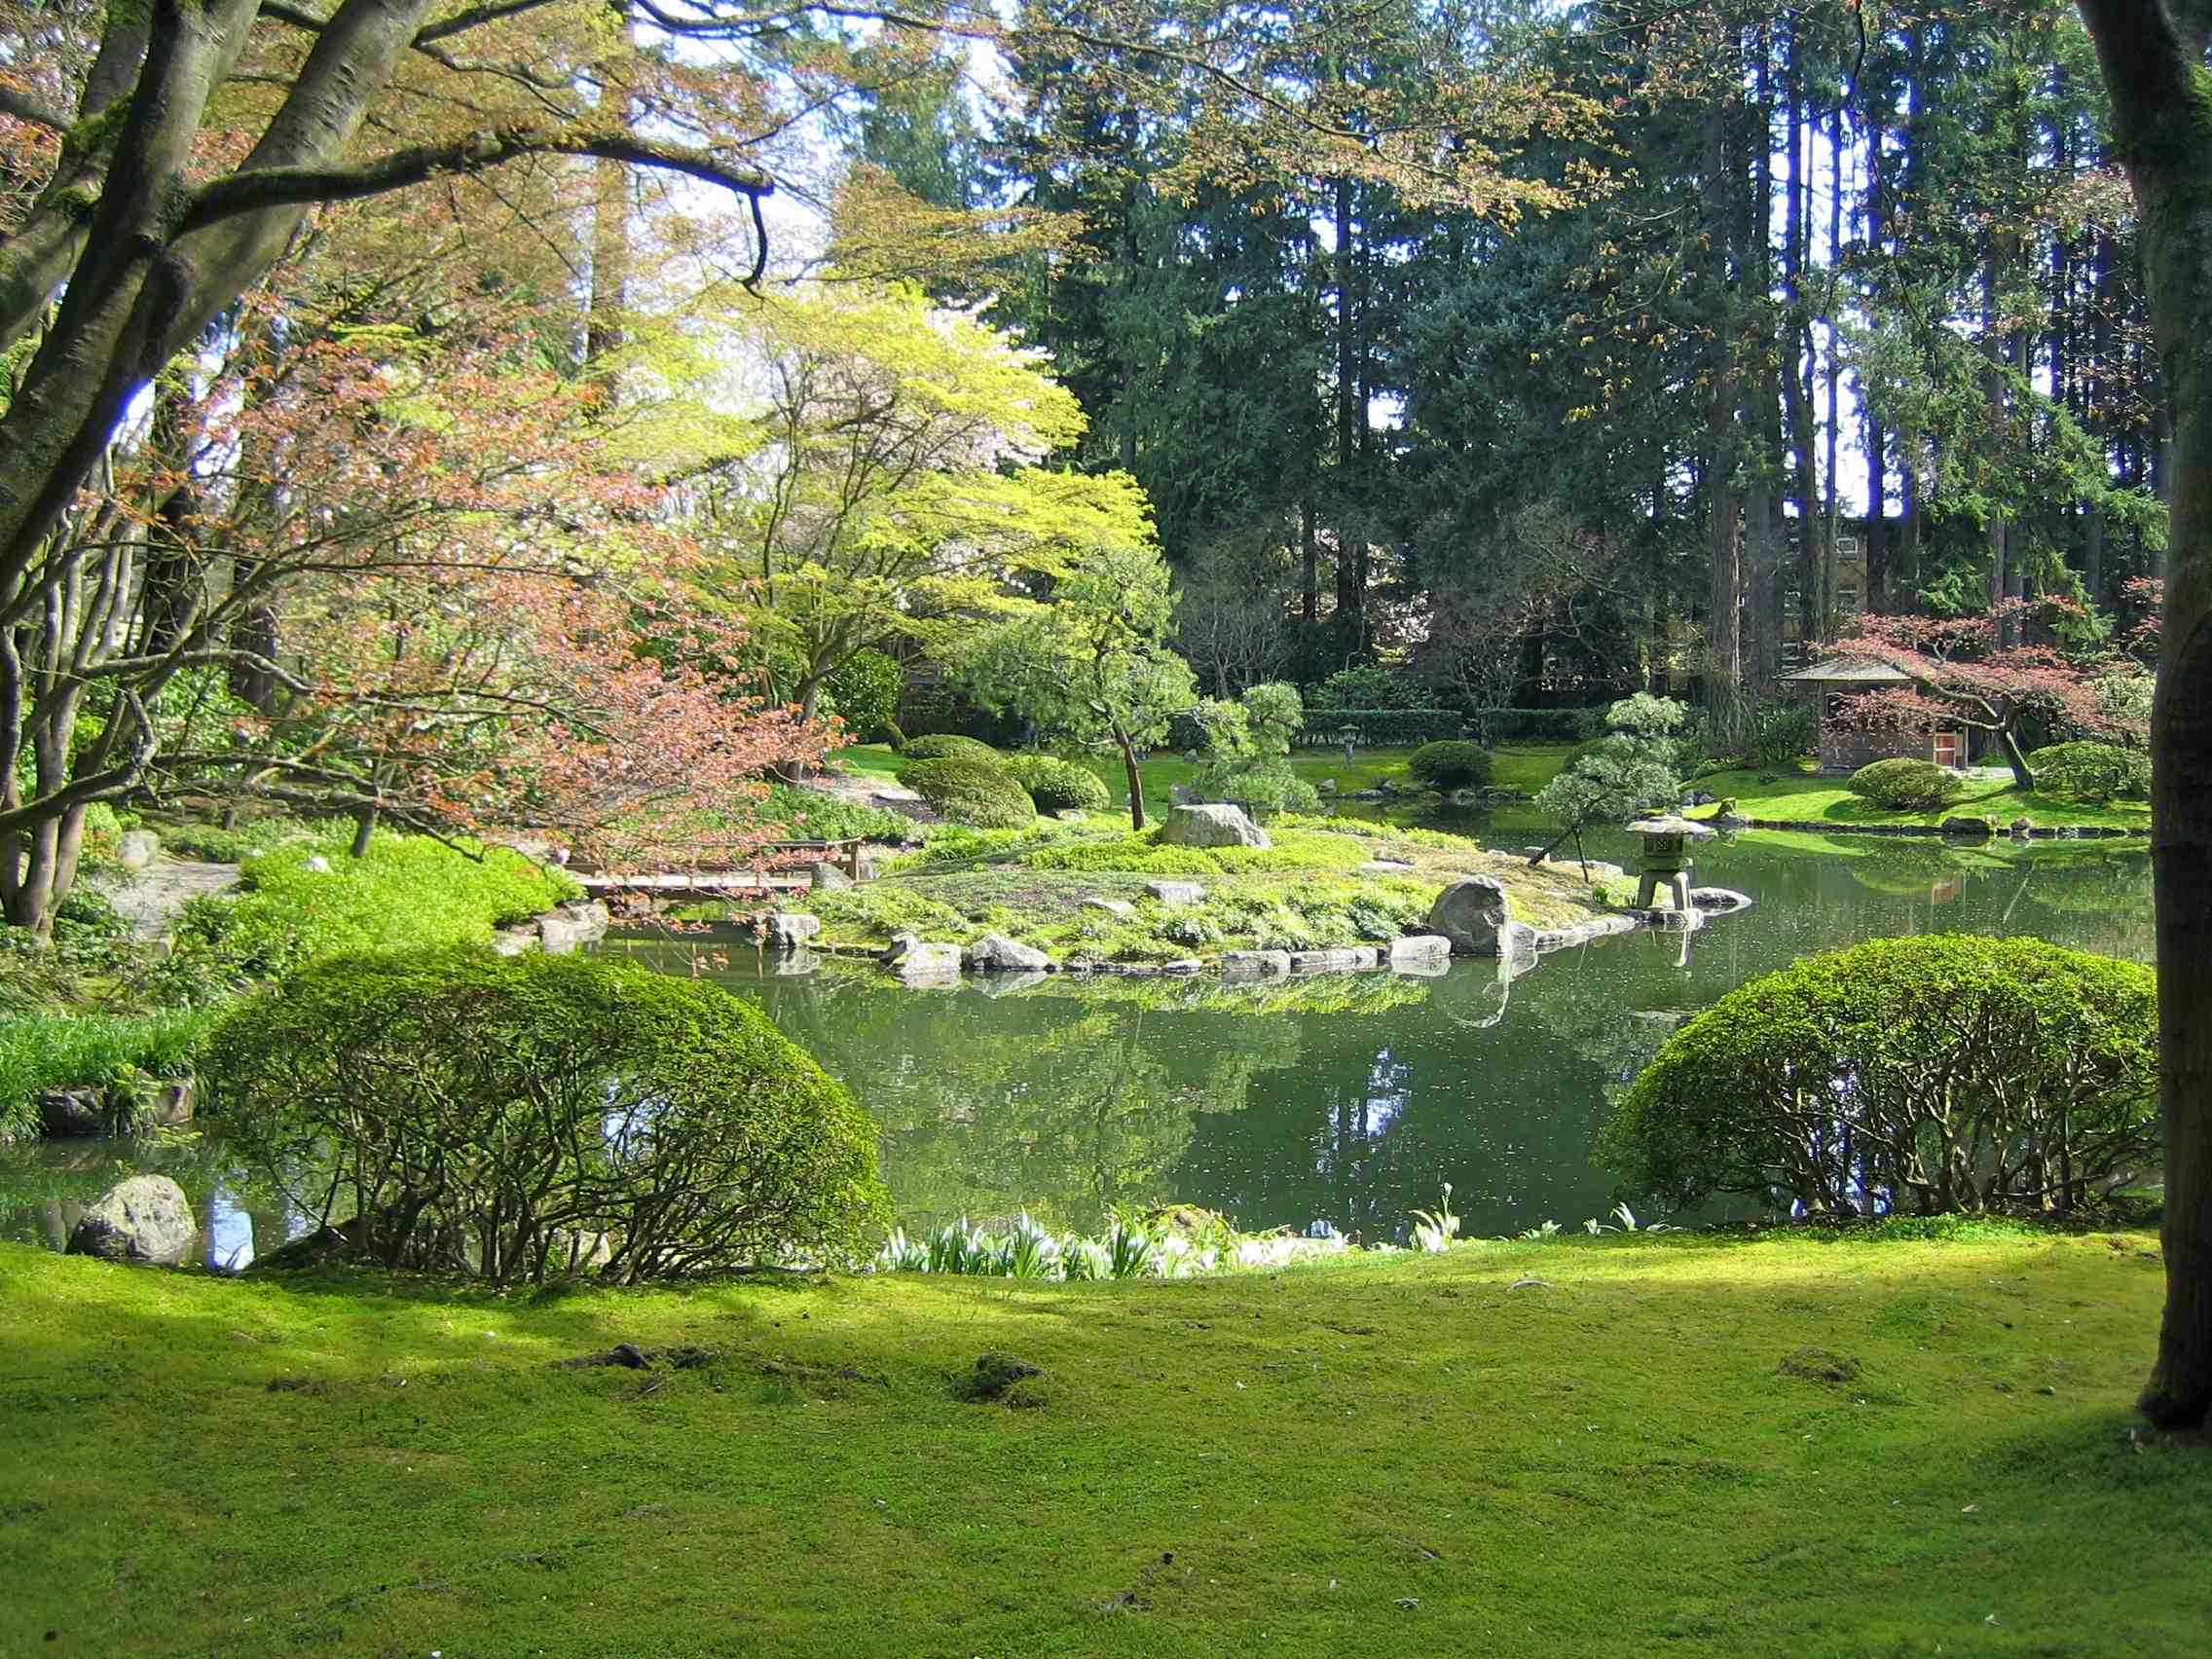 A landscape s story the nitobe memorial garden ekostories for Japanese zen garden